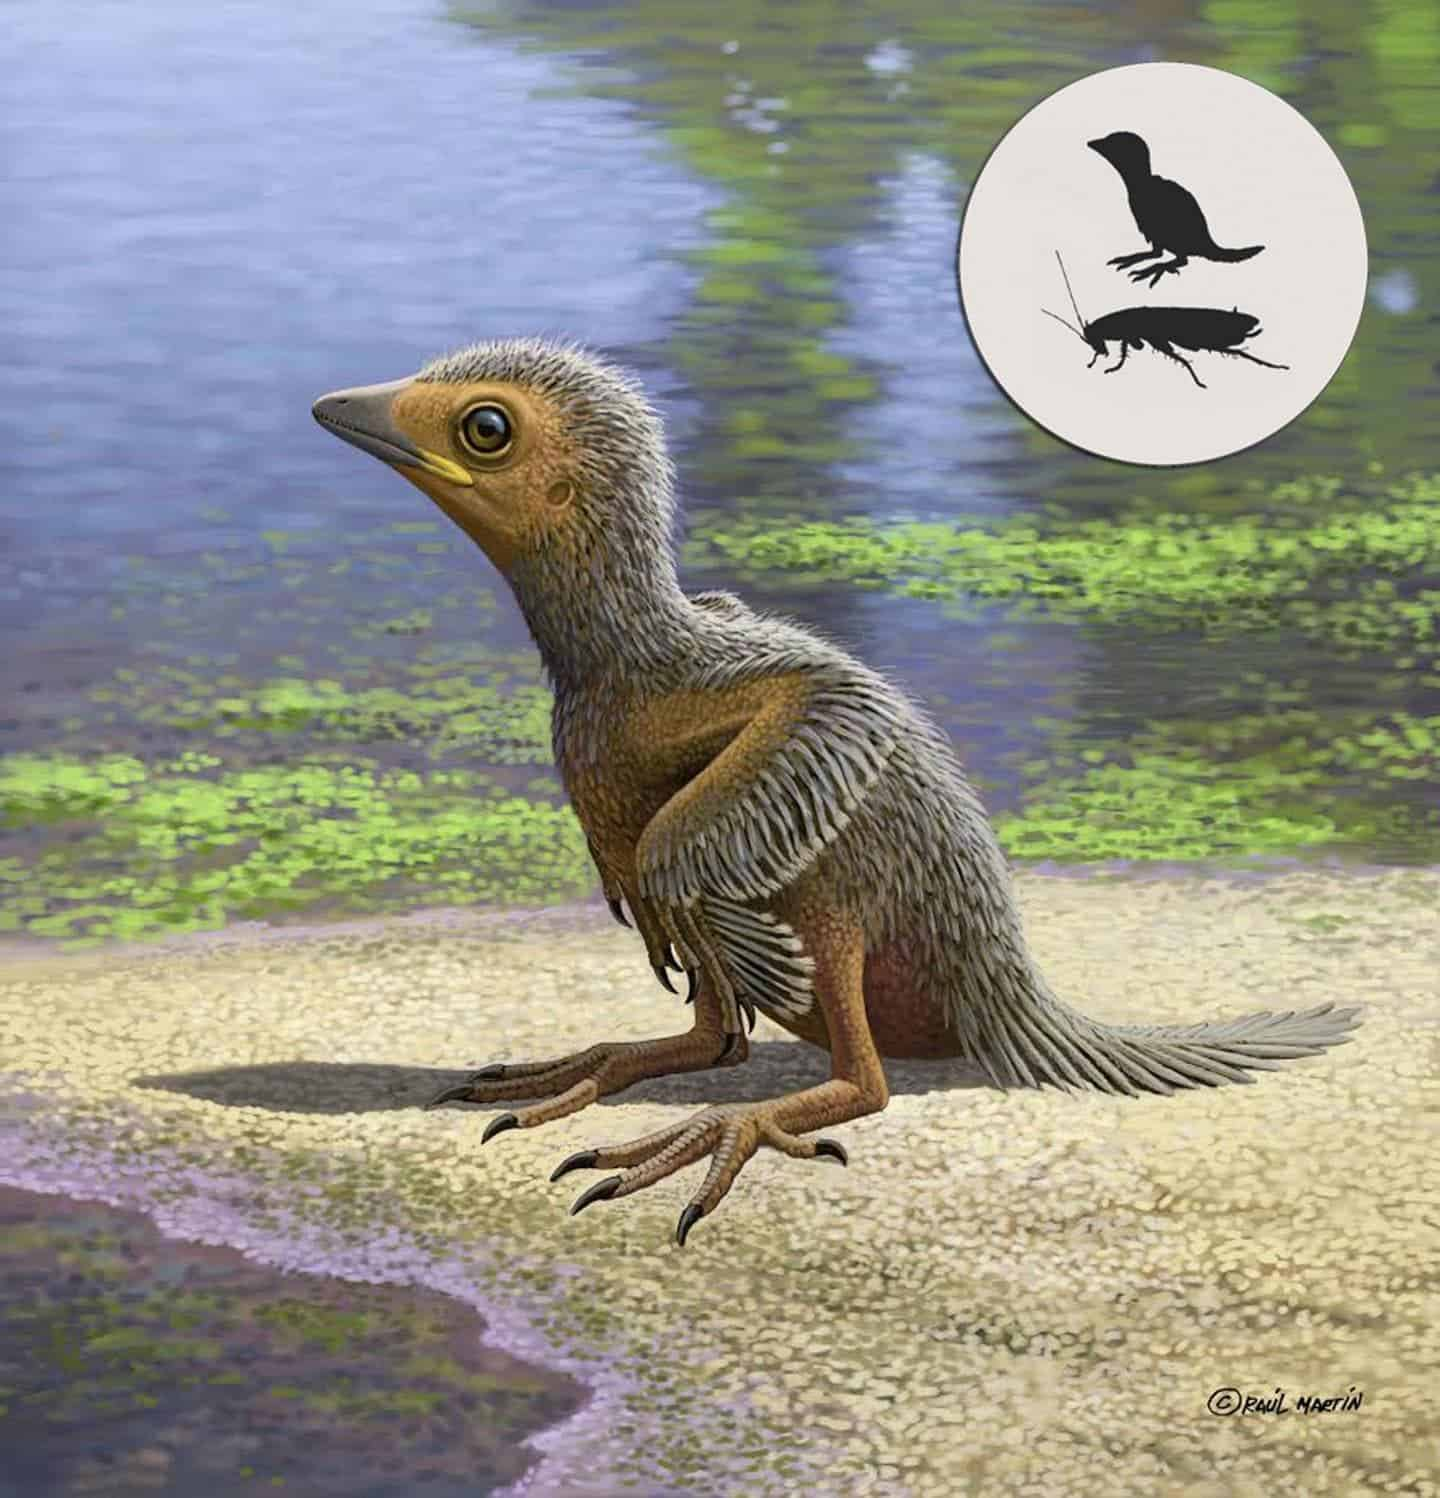 Ancient baby bird fossil offers insights into avian evolution